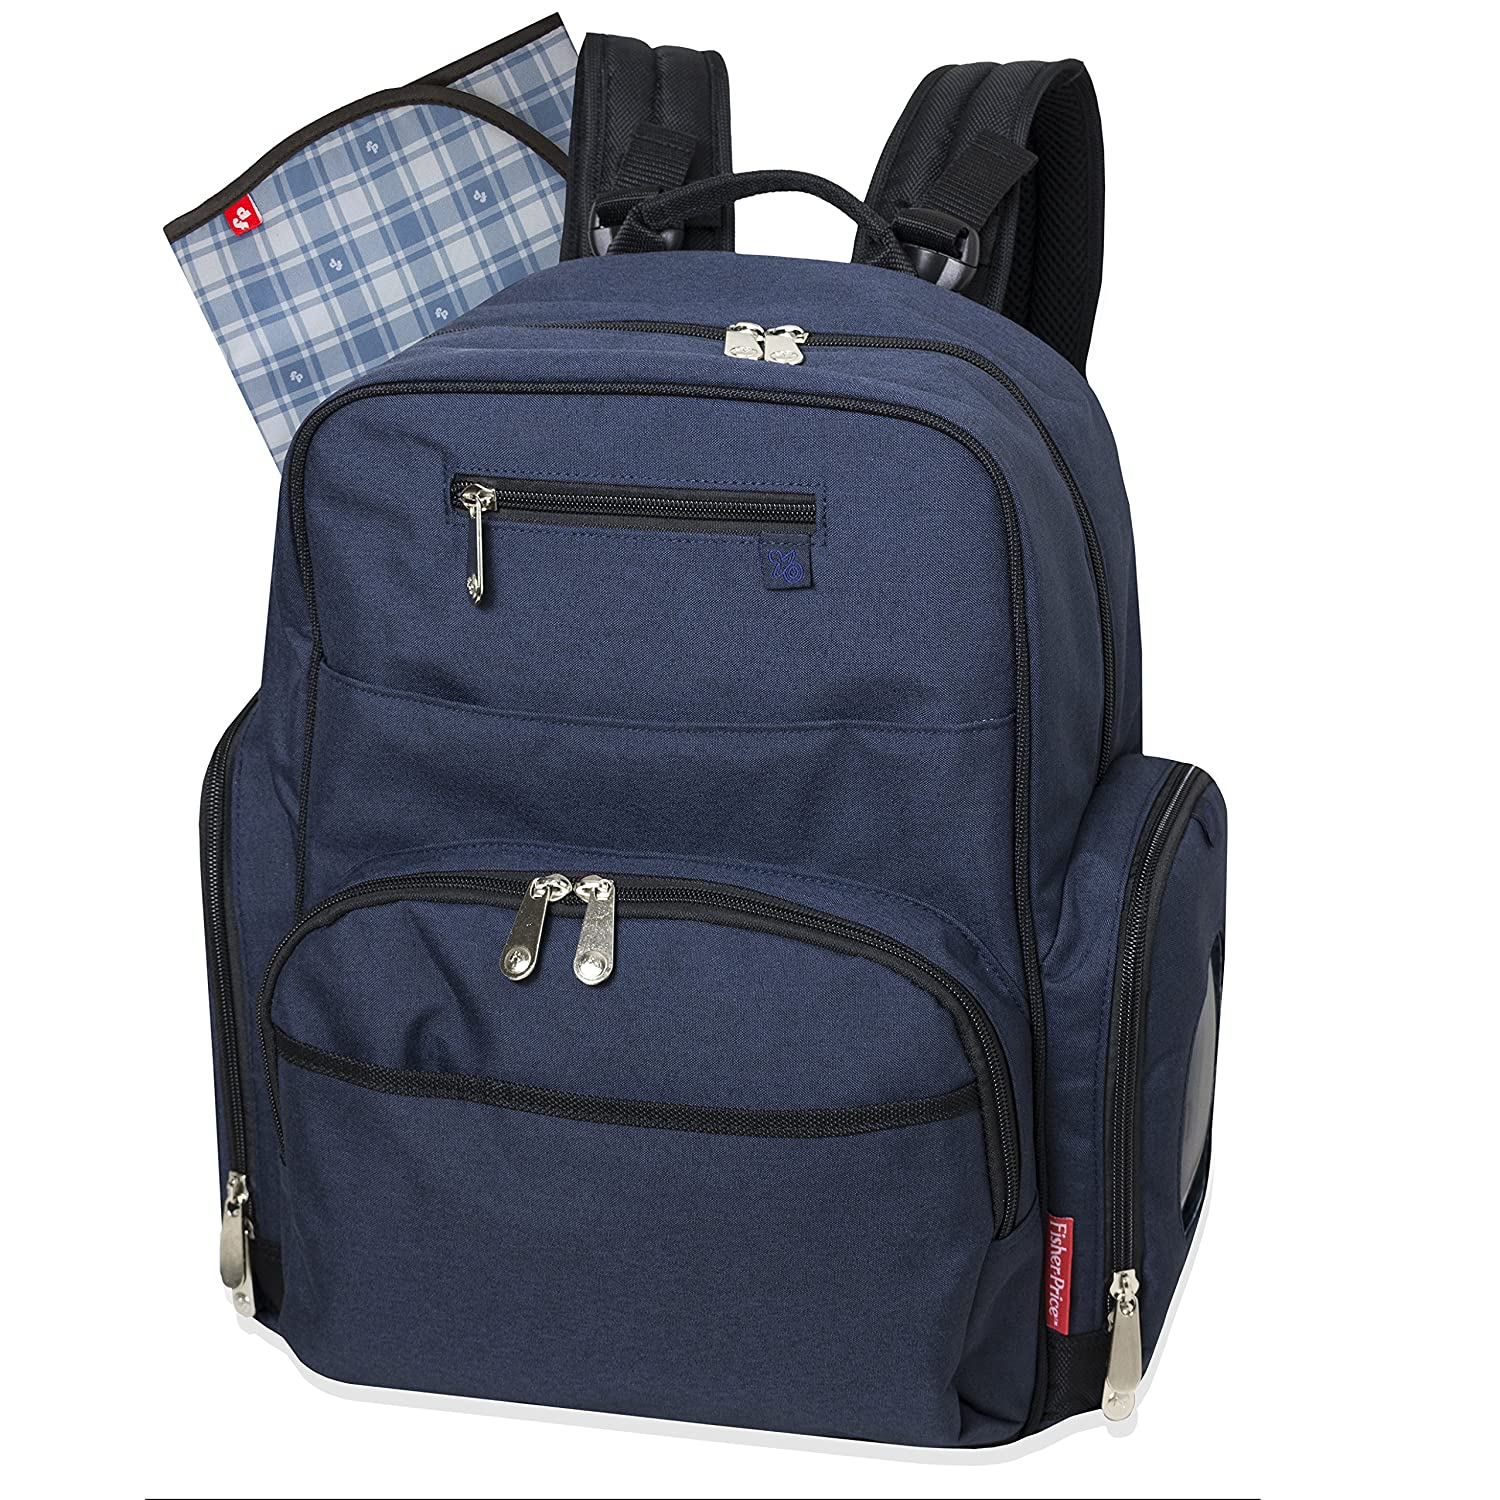 e422a8df553 Amazon.com   Fisher Price Backpack Diaper Bag - Fastfinder Denim   Baby